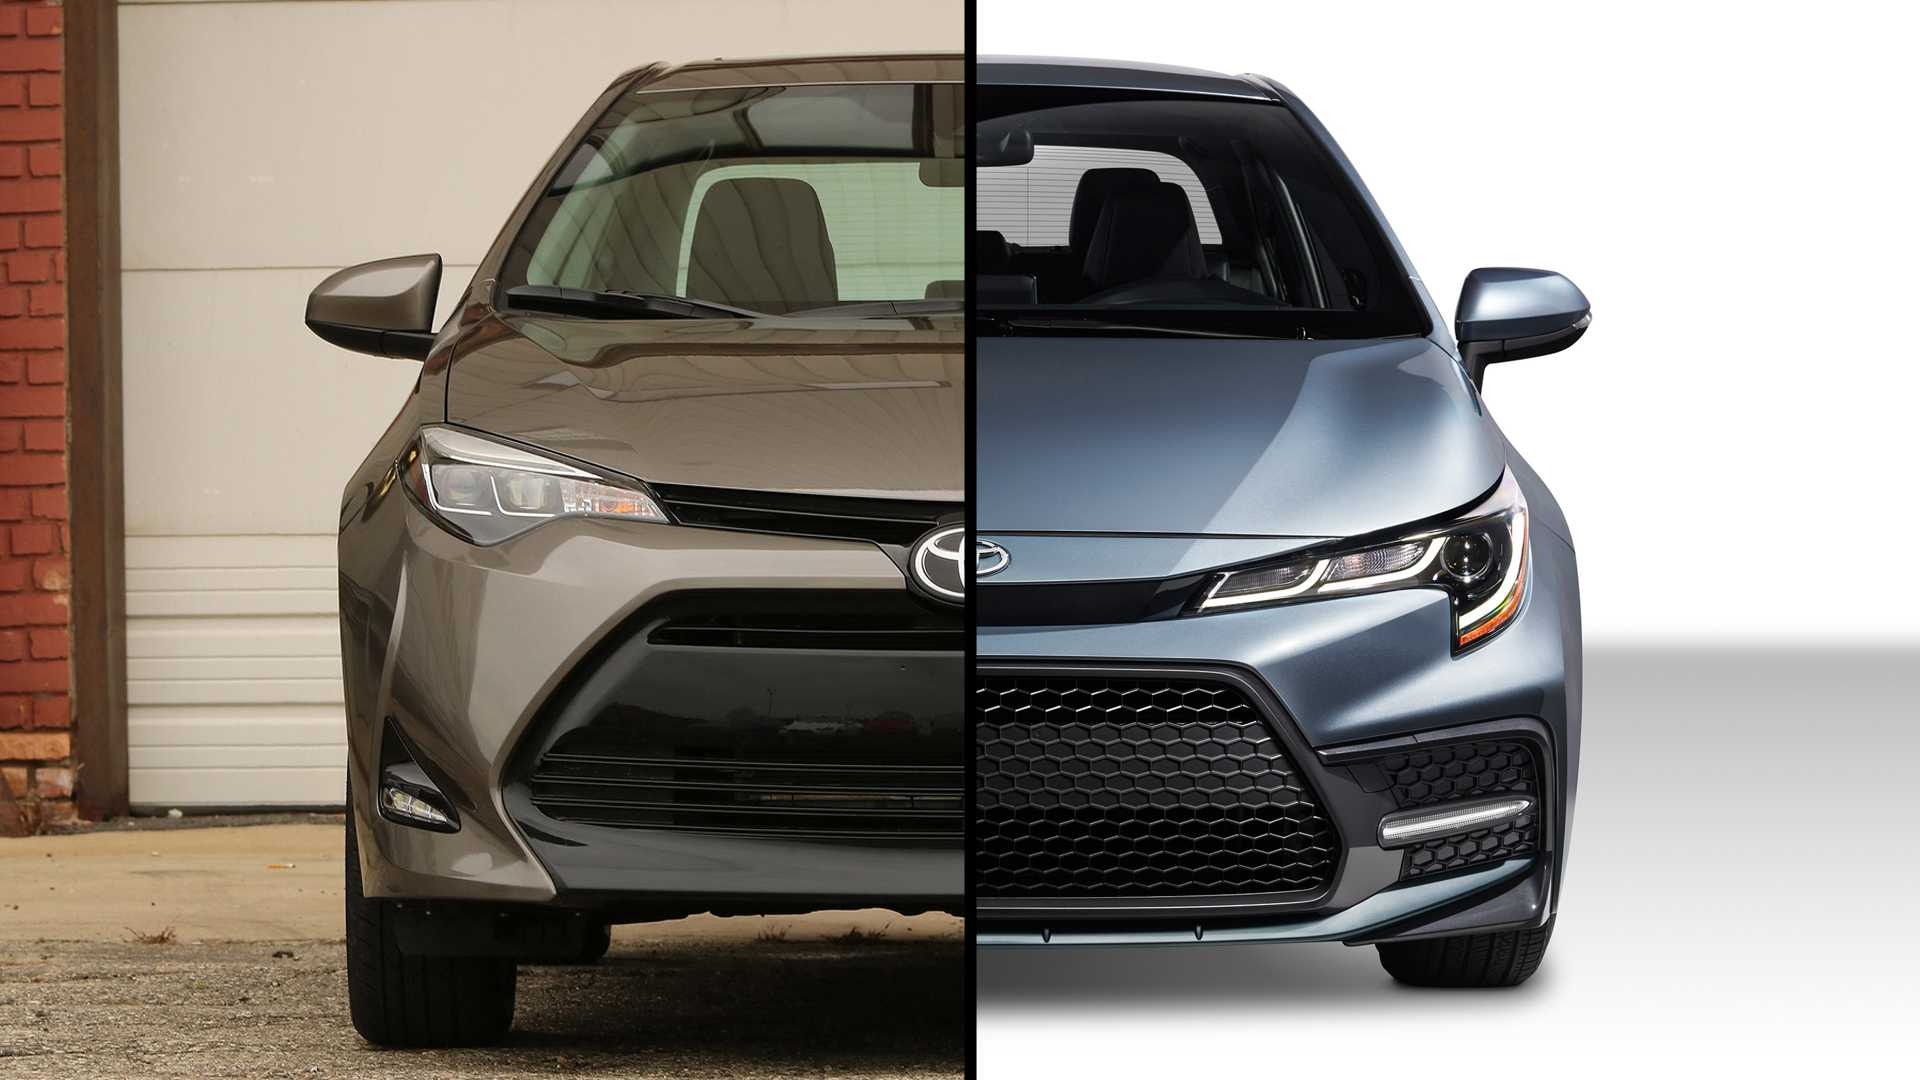 95 The When Toyota 2020 Come Out Specs by When Toyota 2020 Come Out